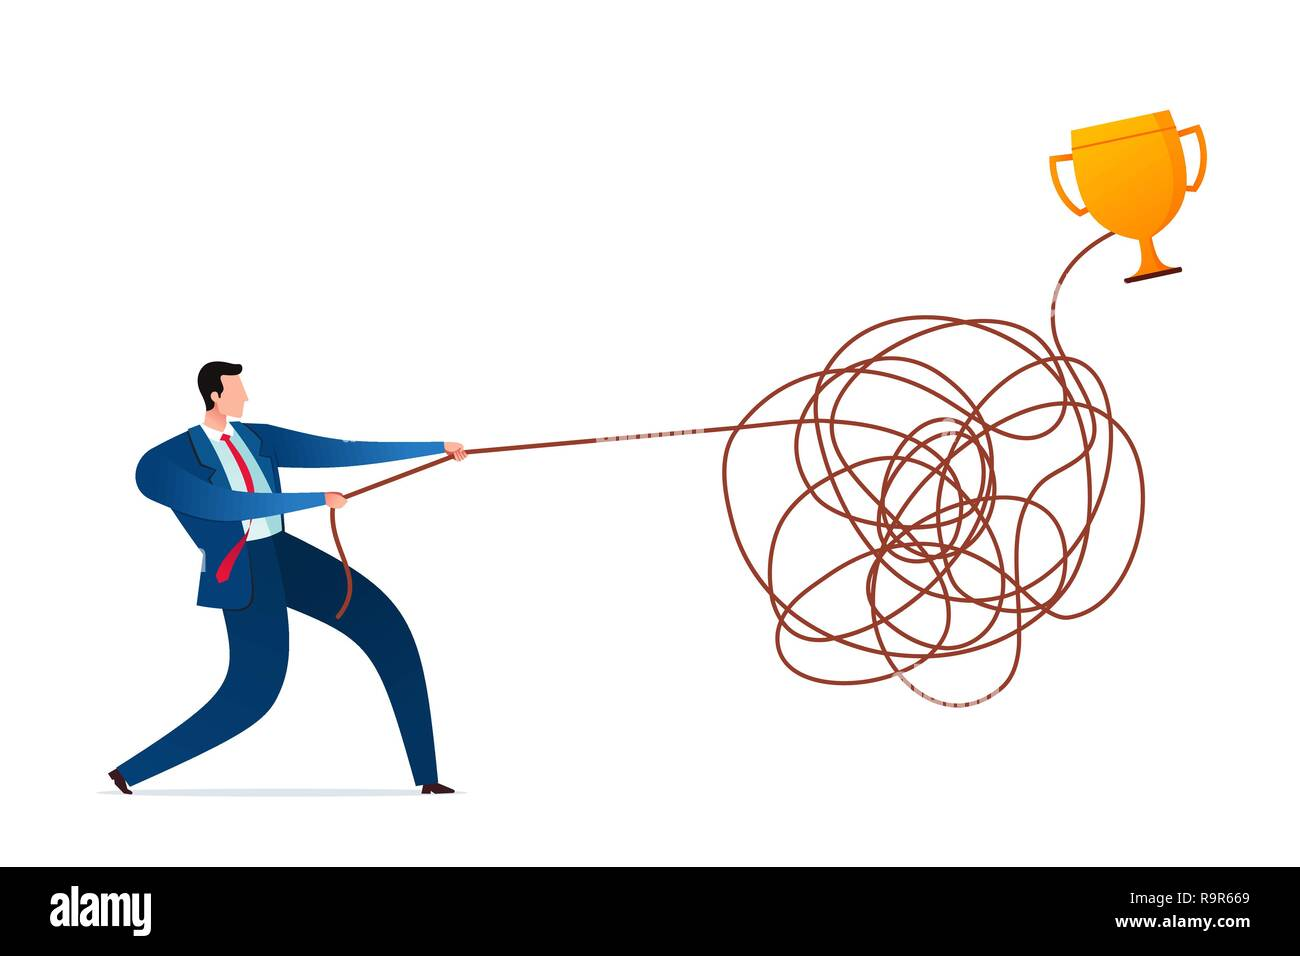 Businessman untangle the rope to find a solution. Business concept illustration. - Stock Vector